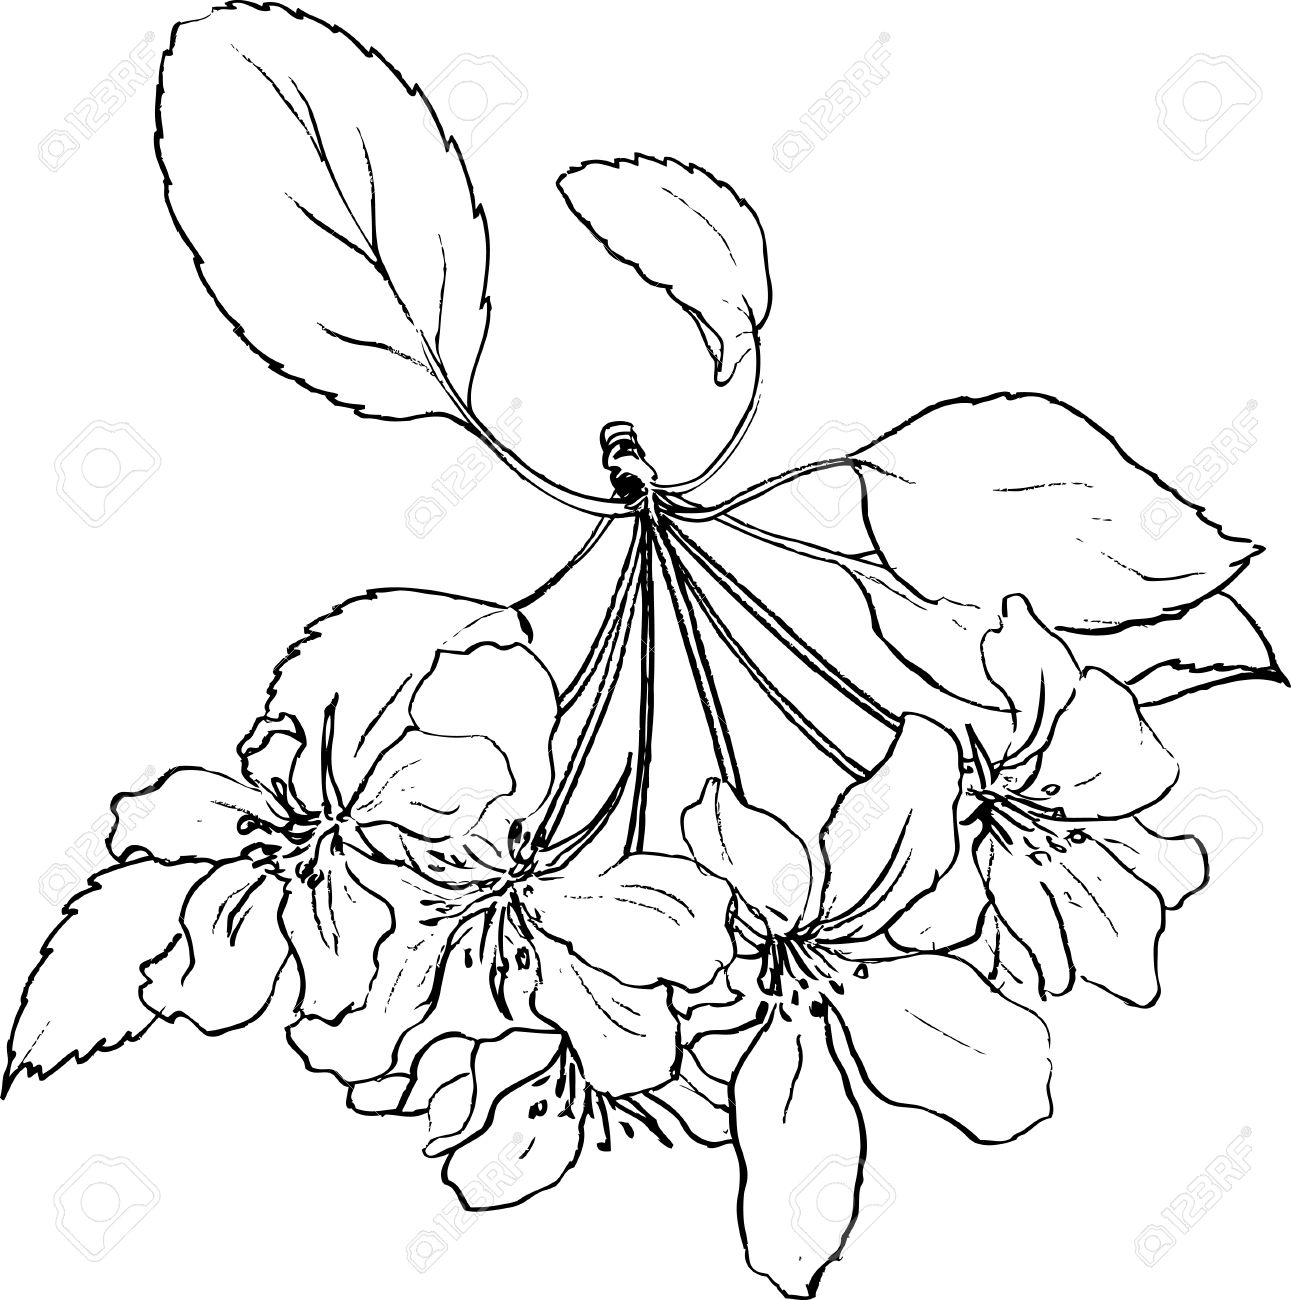 1291x1300 Spring Flowers Of Apple Tree, Line Drawing Apple Blossoms